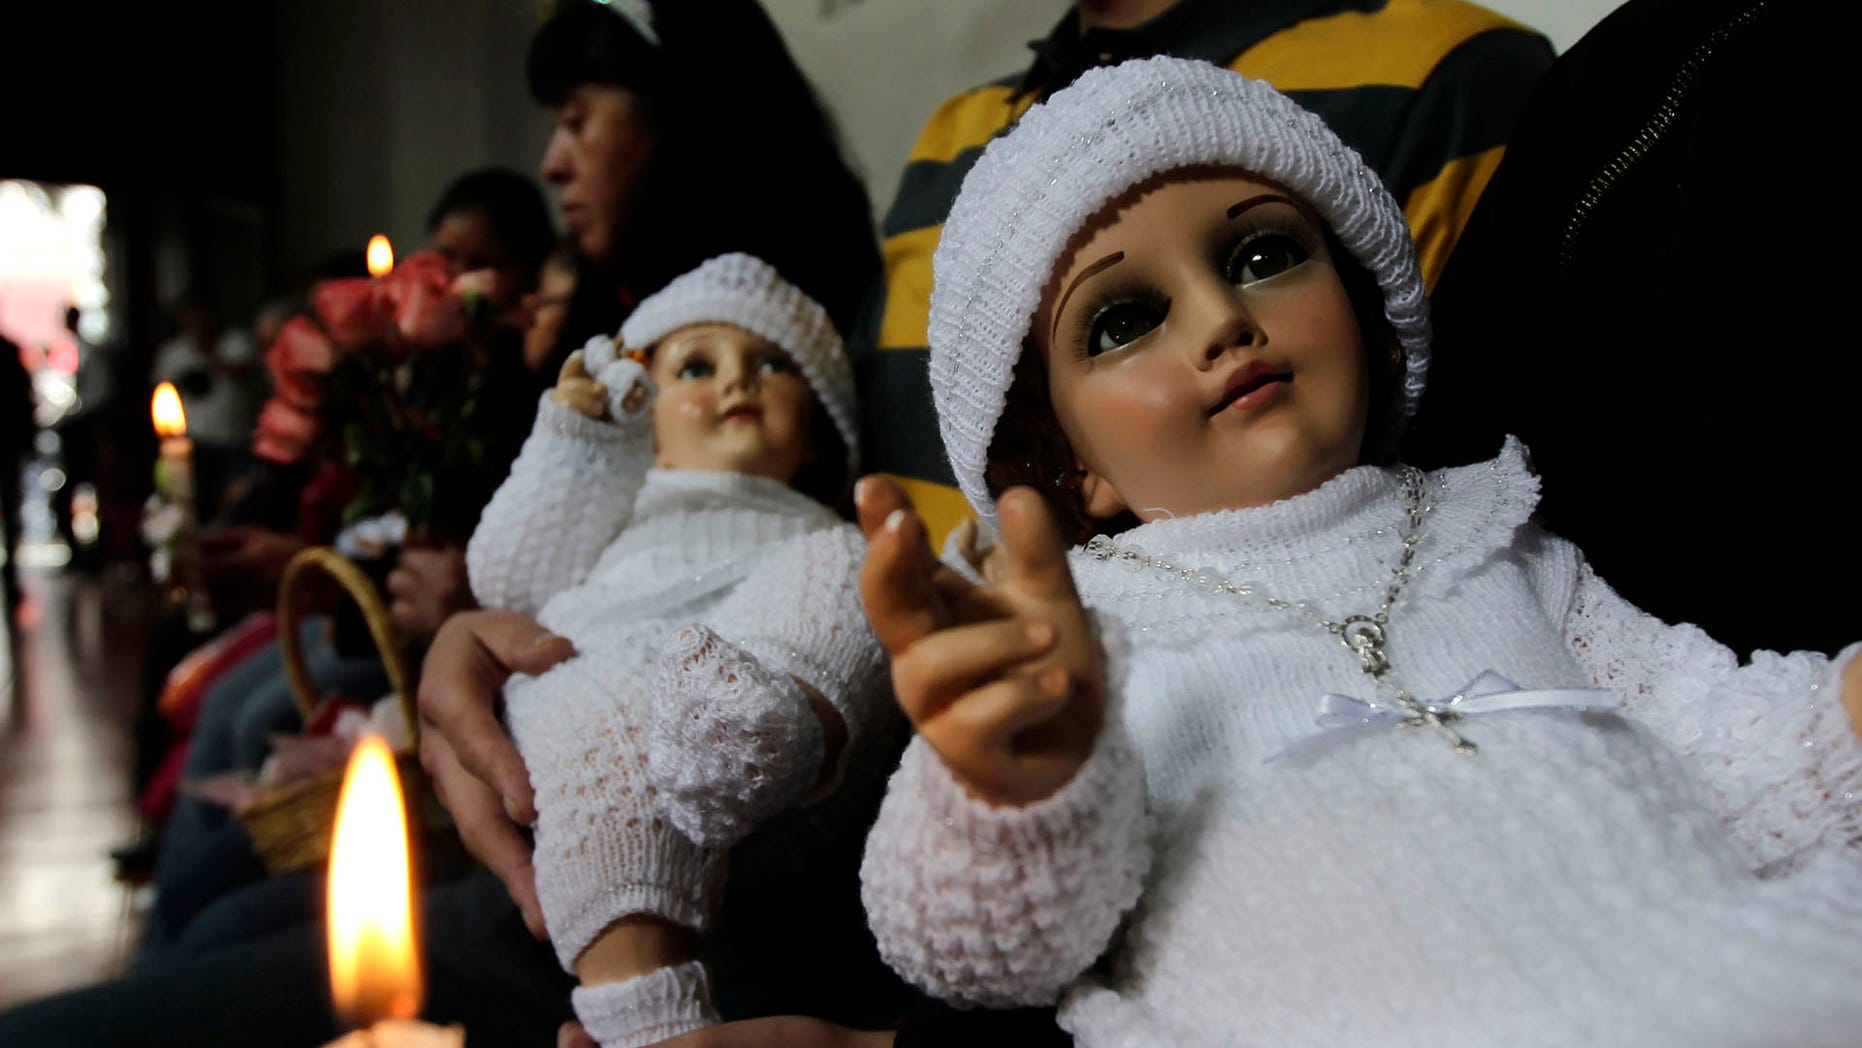 People hold dressed-up dolls representing baby Jesus during a mass in La Candelaria church in Mexico City.